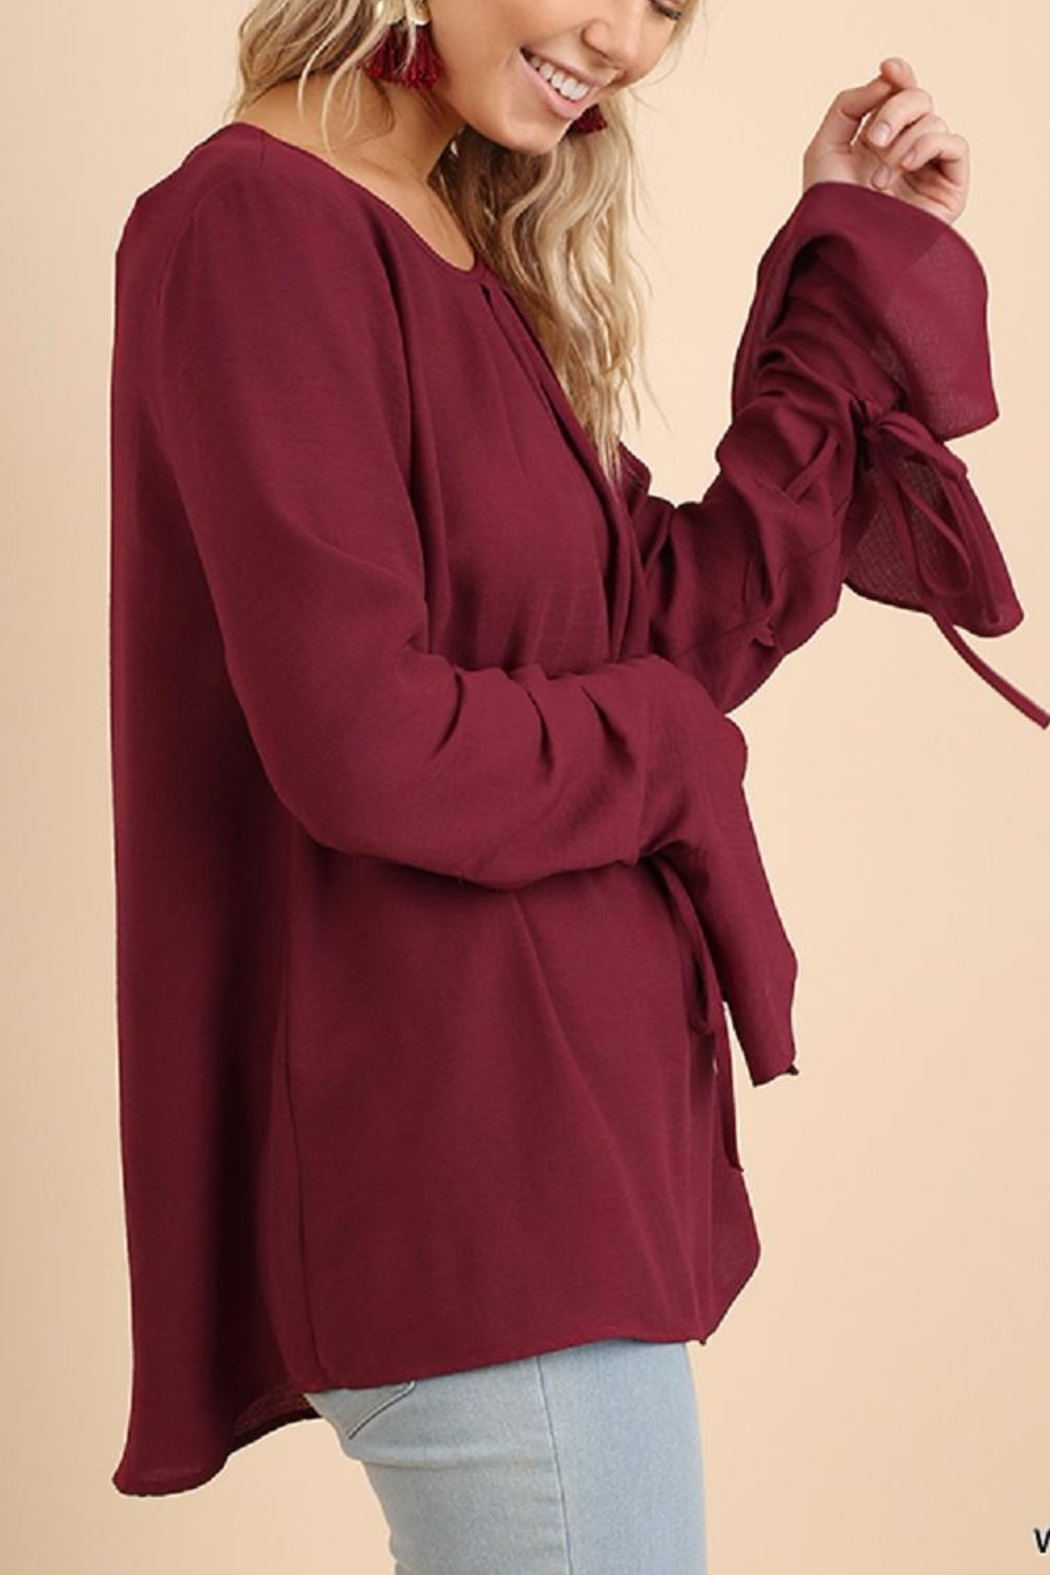 Umgee USA Bell Sleeve Blouse - Front Full Image